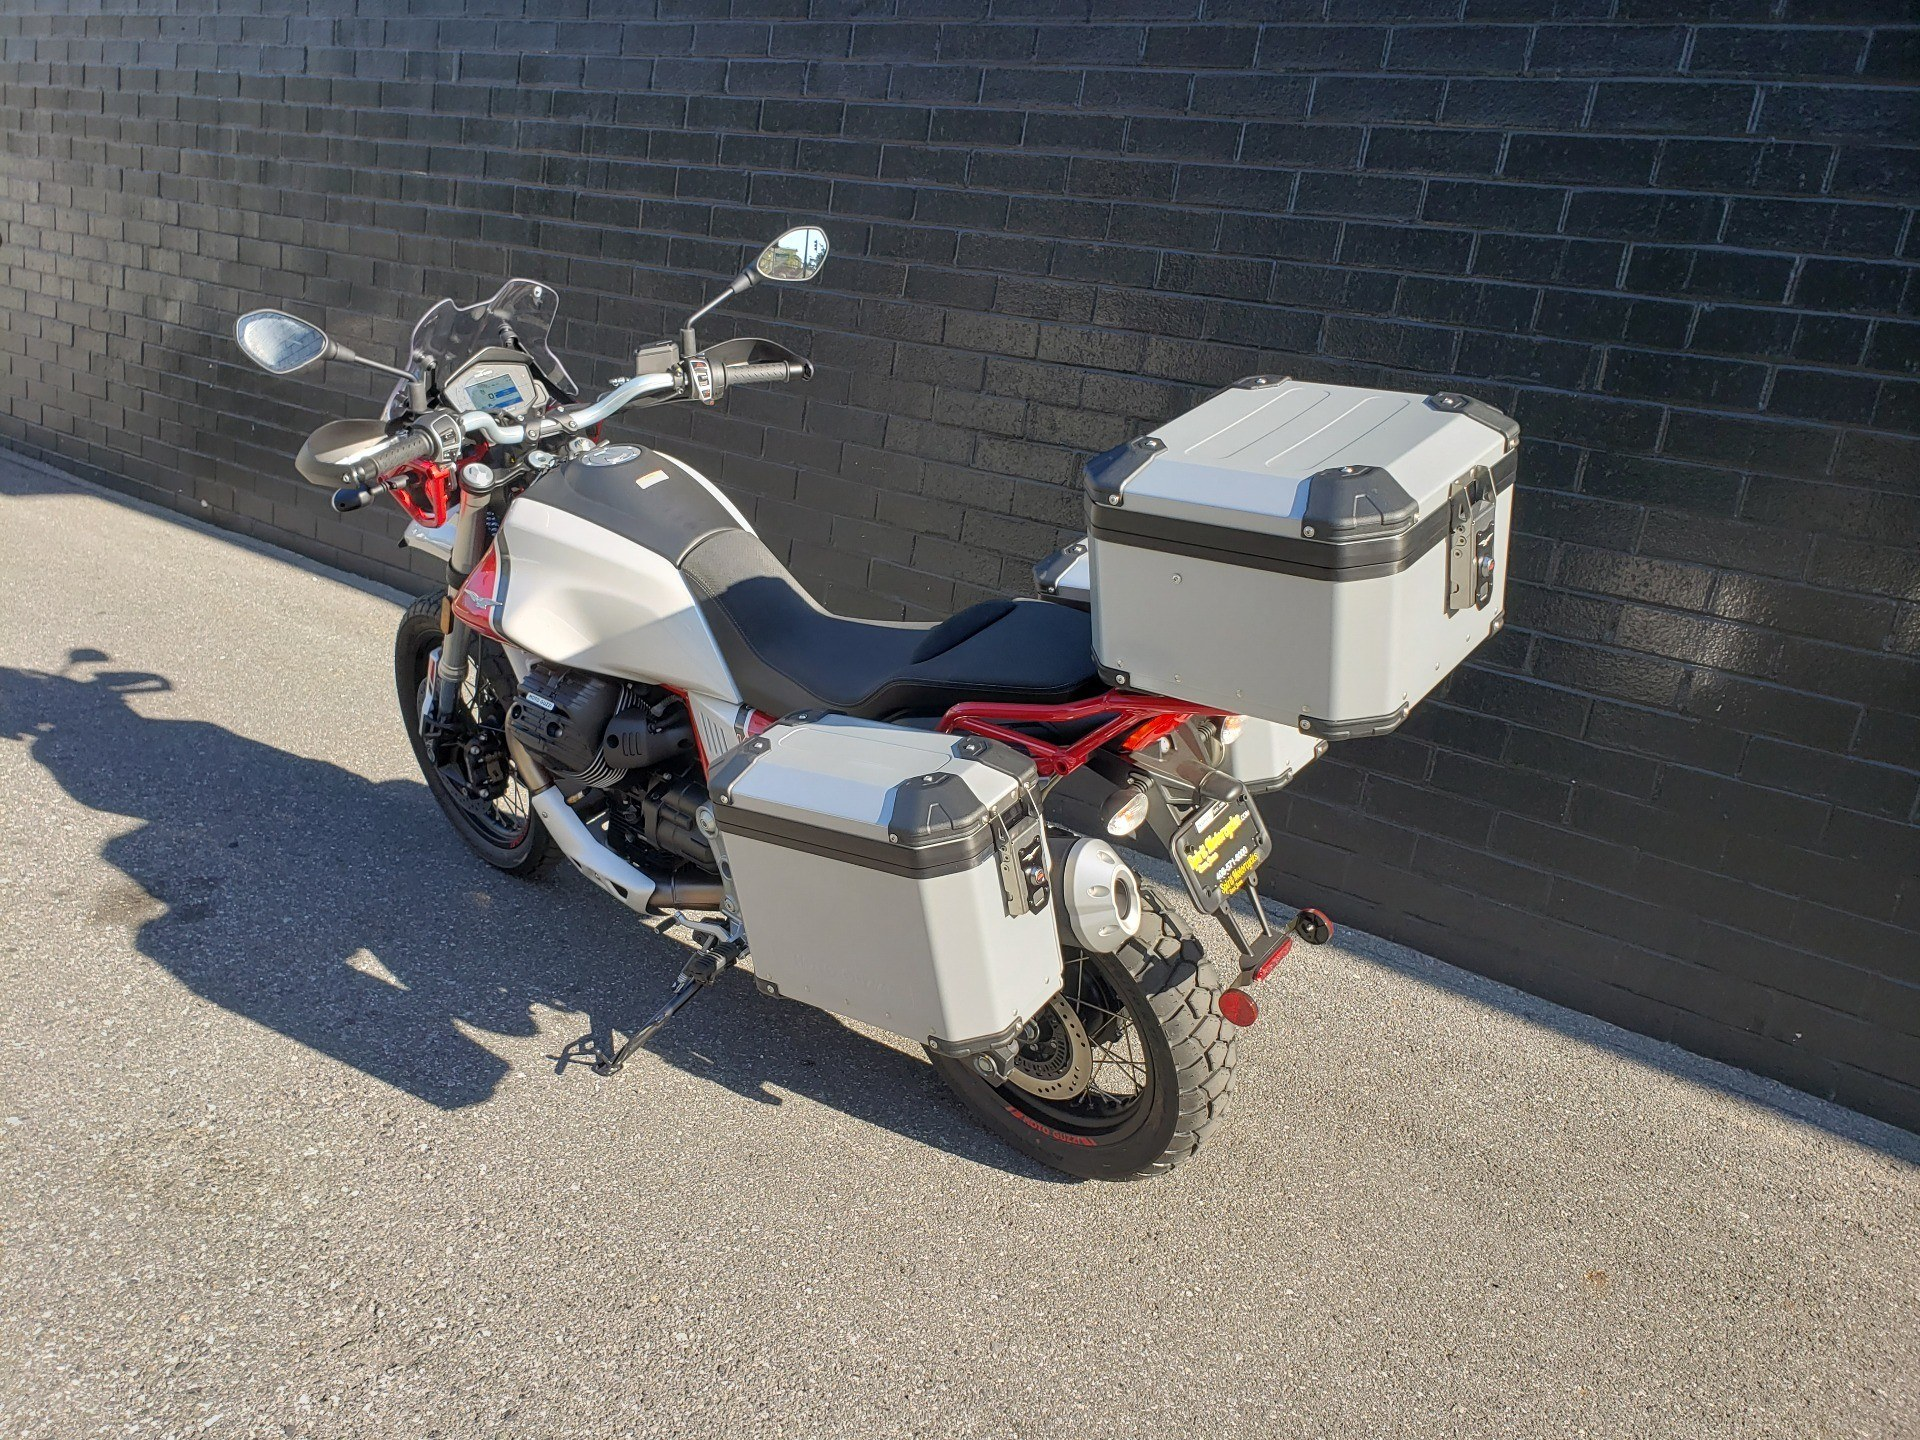 2020 Moto Guzzi V85 TT Adventure in San Jose, California - Photo 7